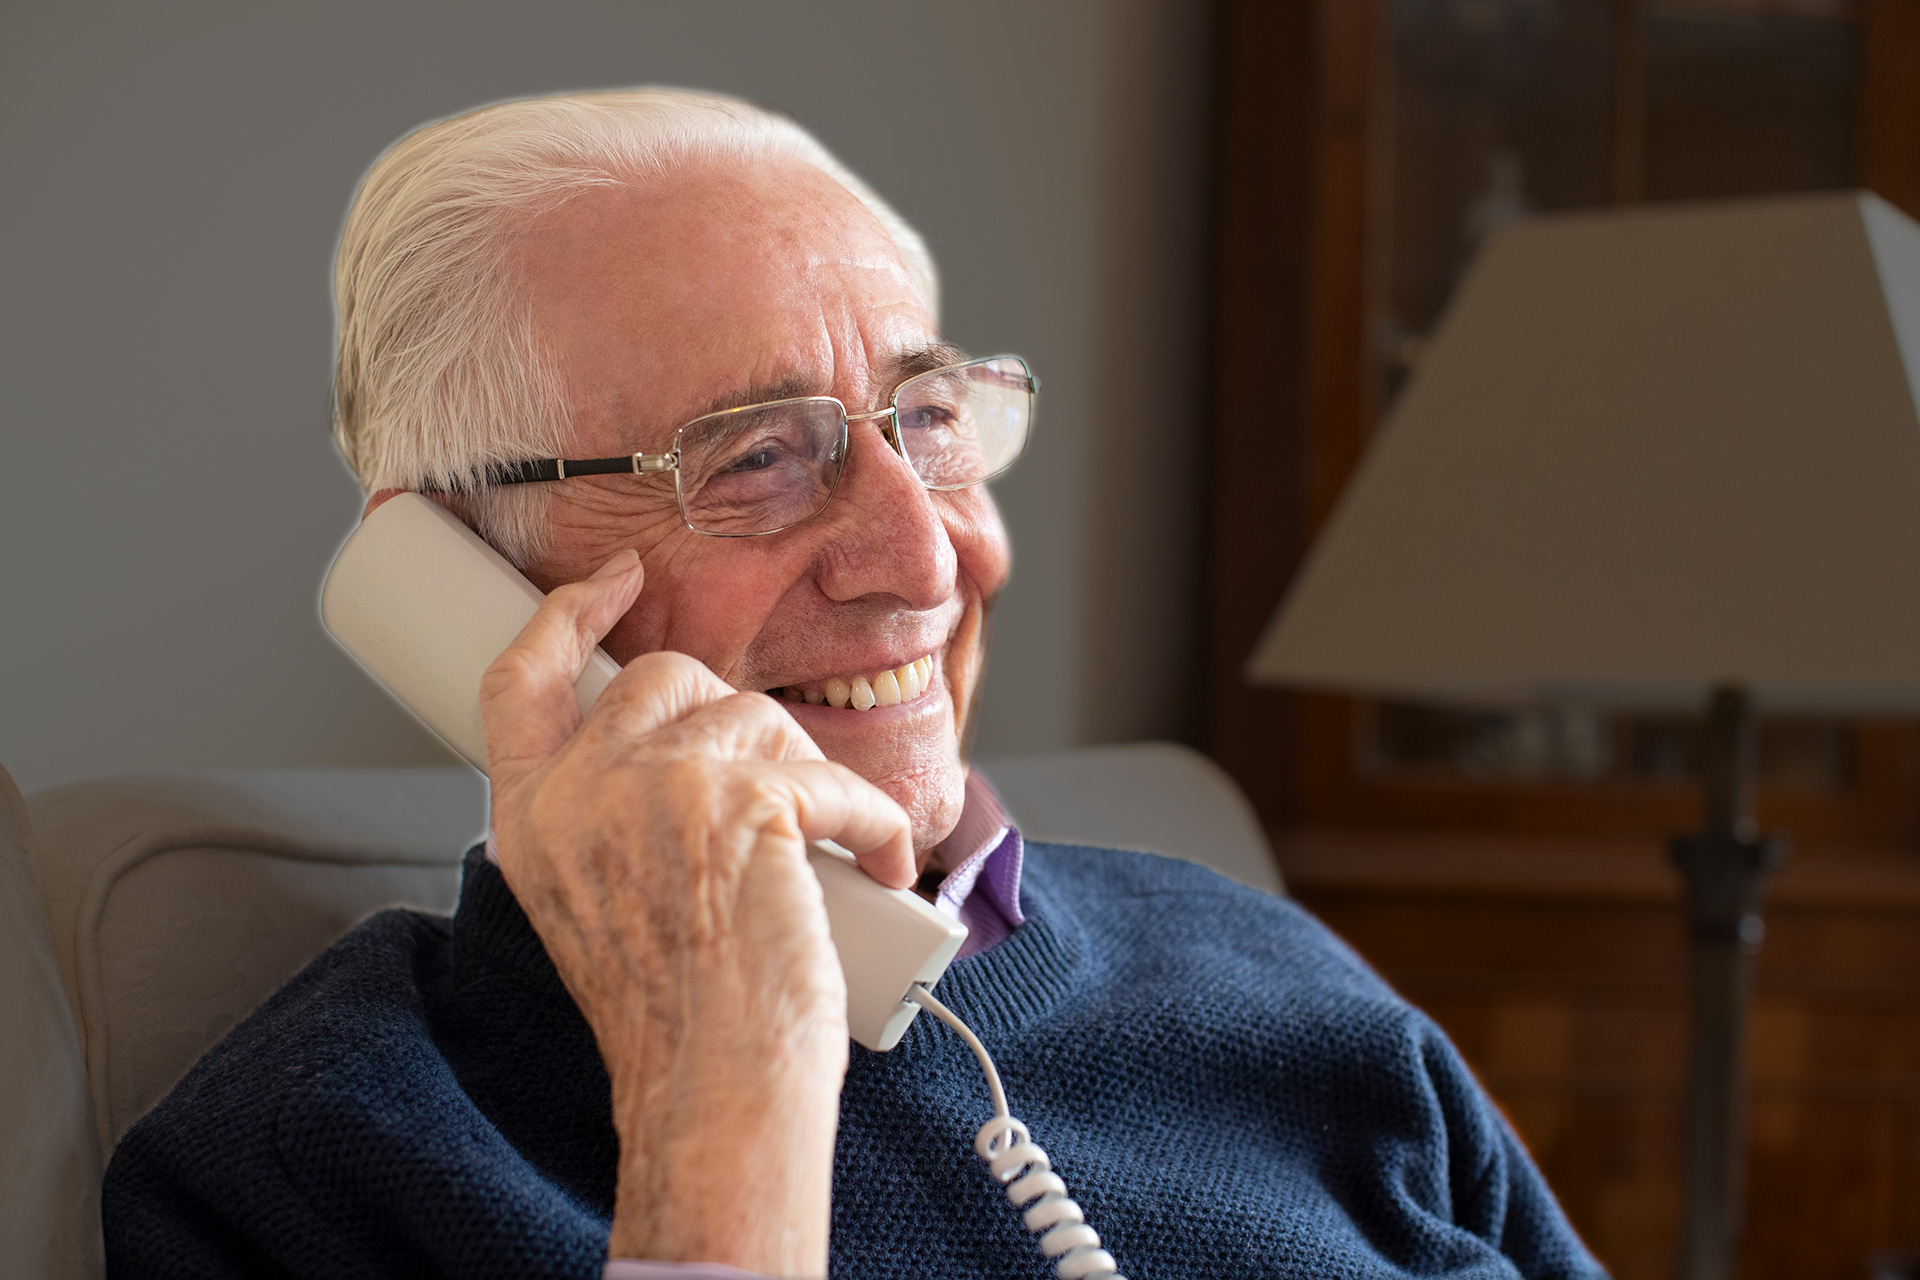 Elderly Man receiving Care Light Personal Contact phone call